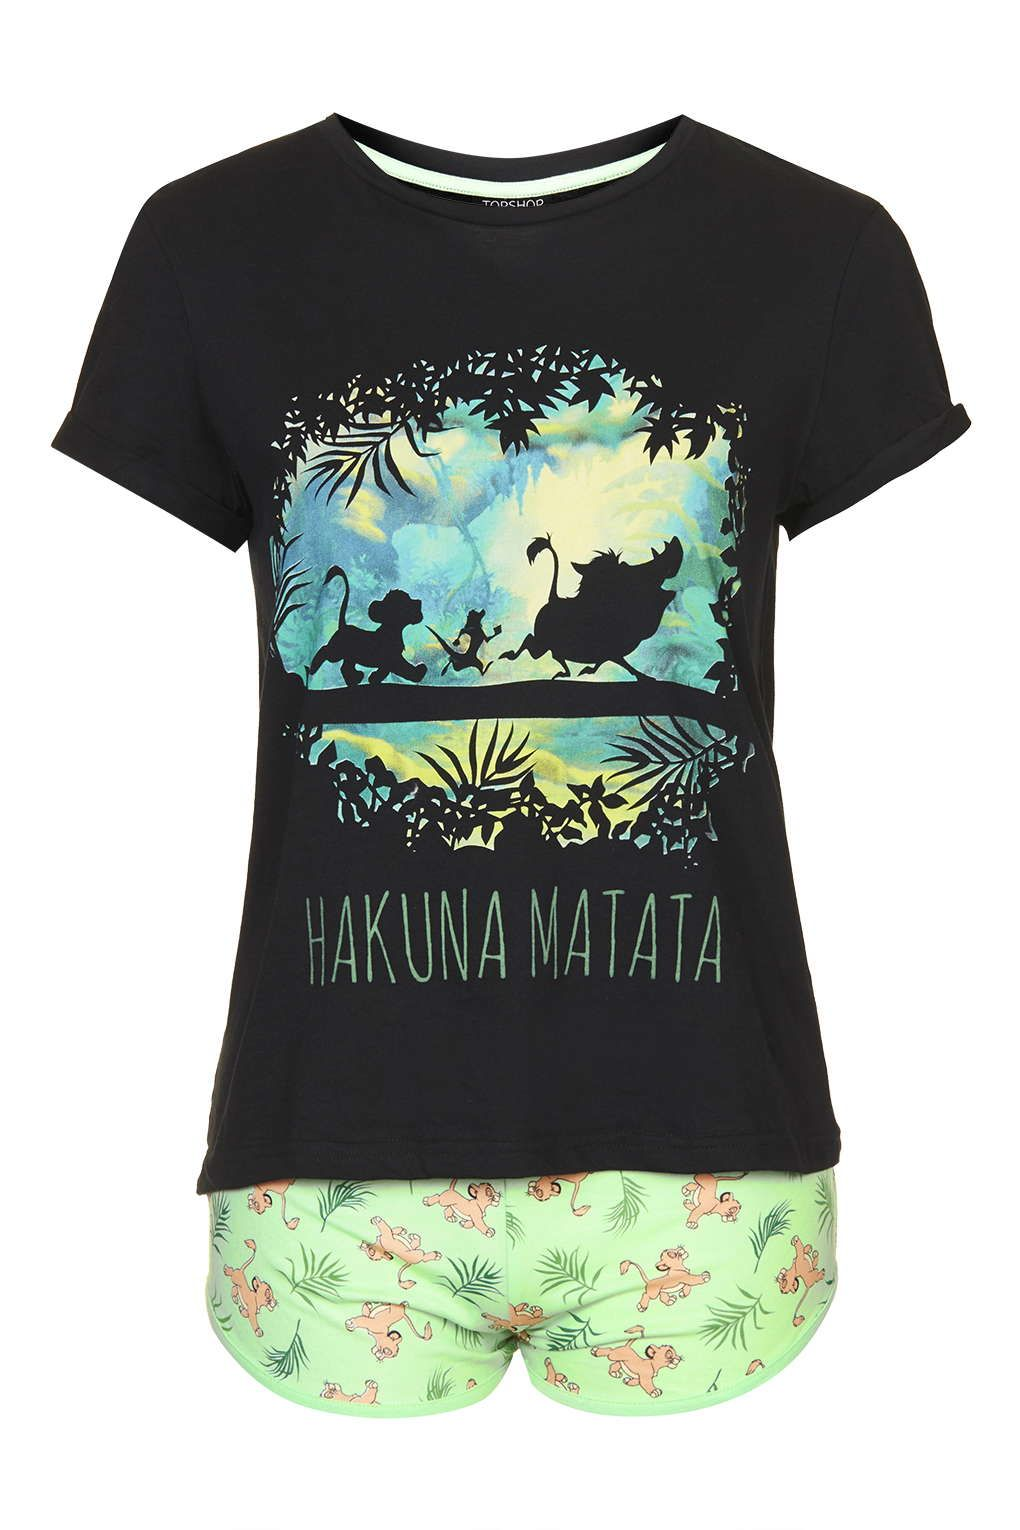 7e862471 10 Things Lion King Fans Need Right Now | Fashion | Pajamas, Disney ...